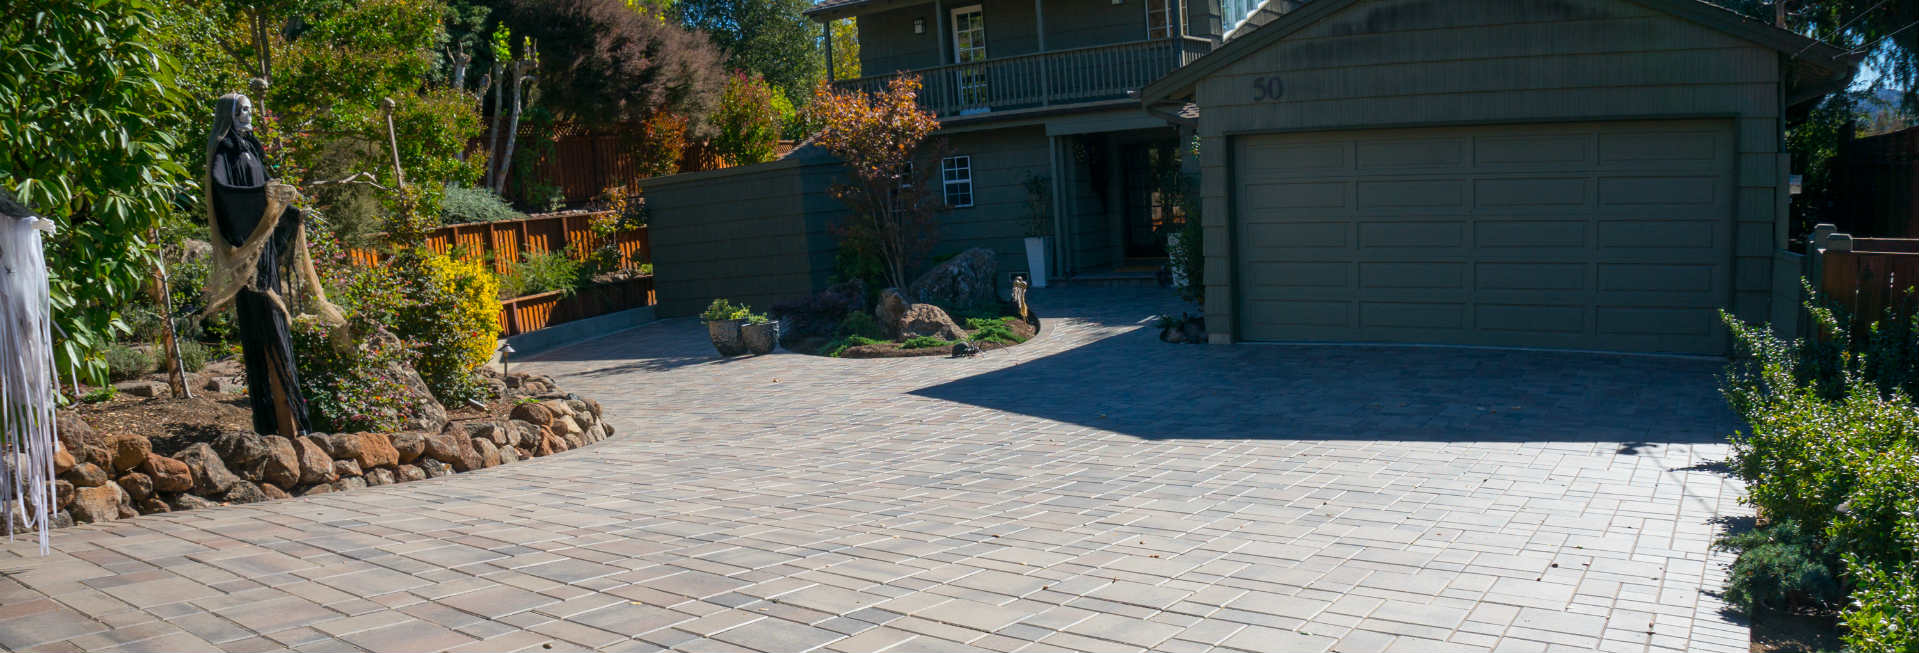 bay area driveway paving contractor